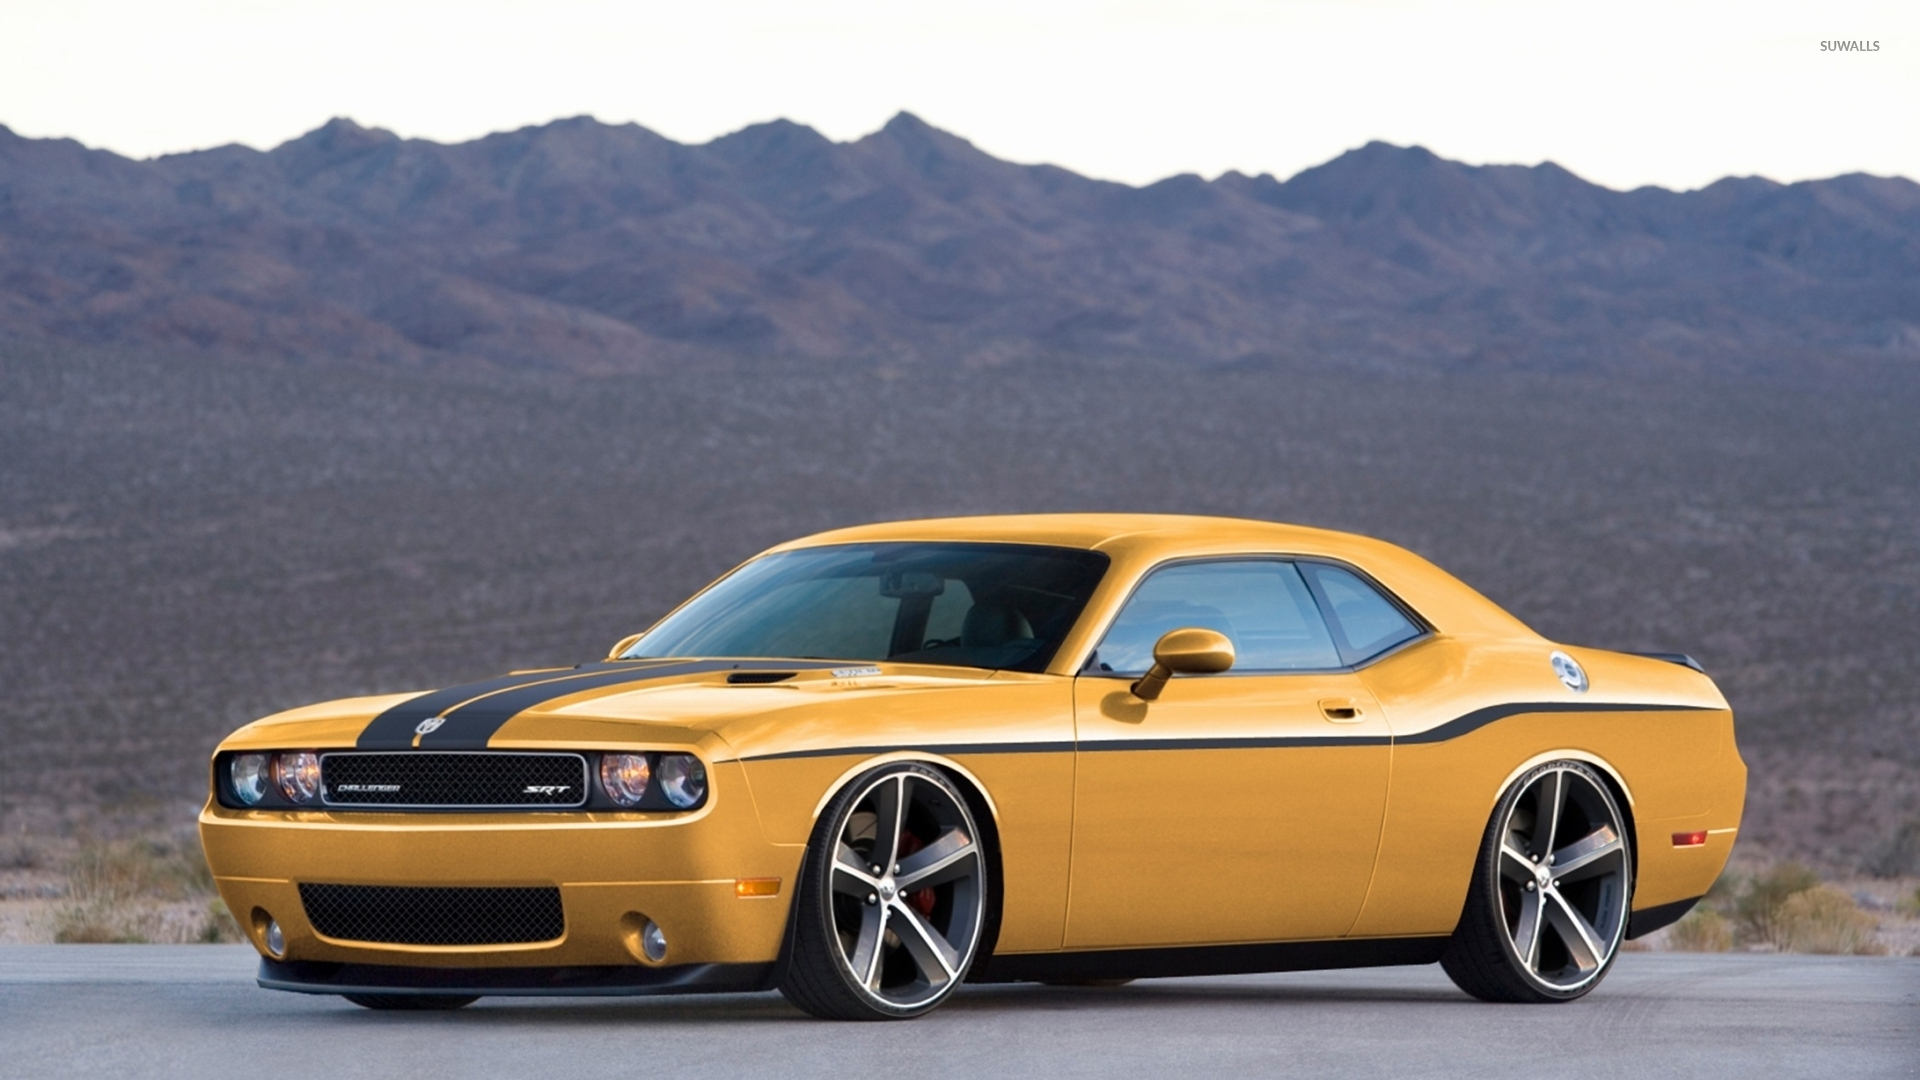 2015 dodge challenger srt wallpaper car wallpapers 33542. Cars Review. Best American Auto & Cars Review